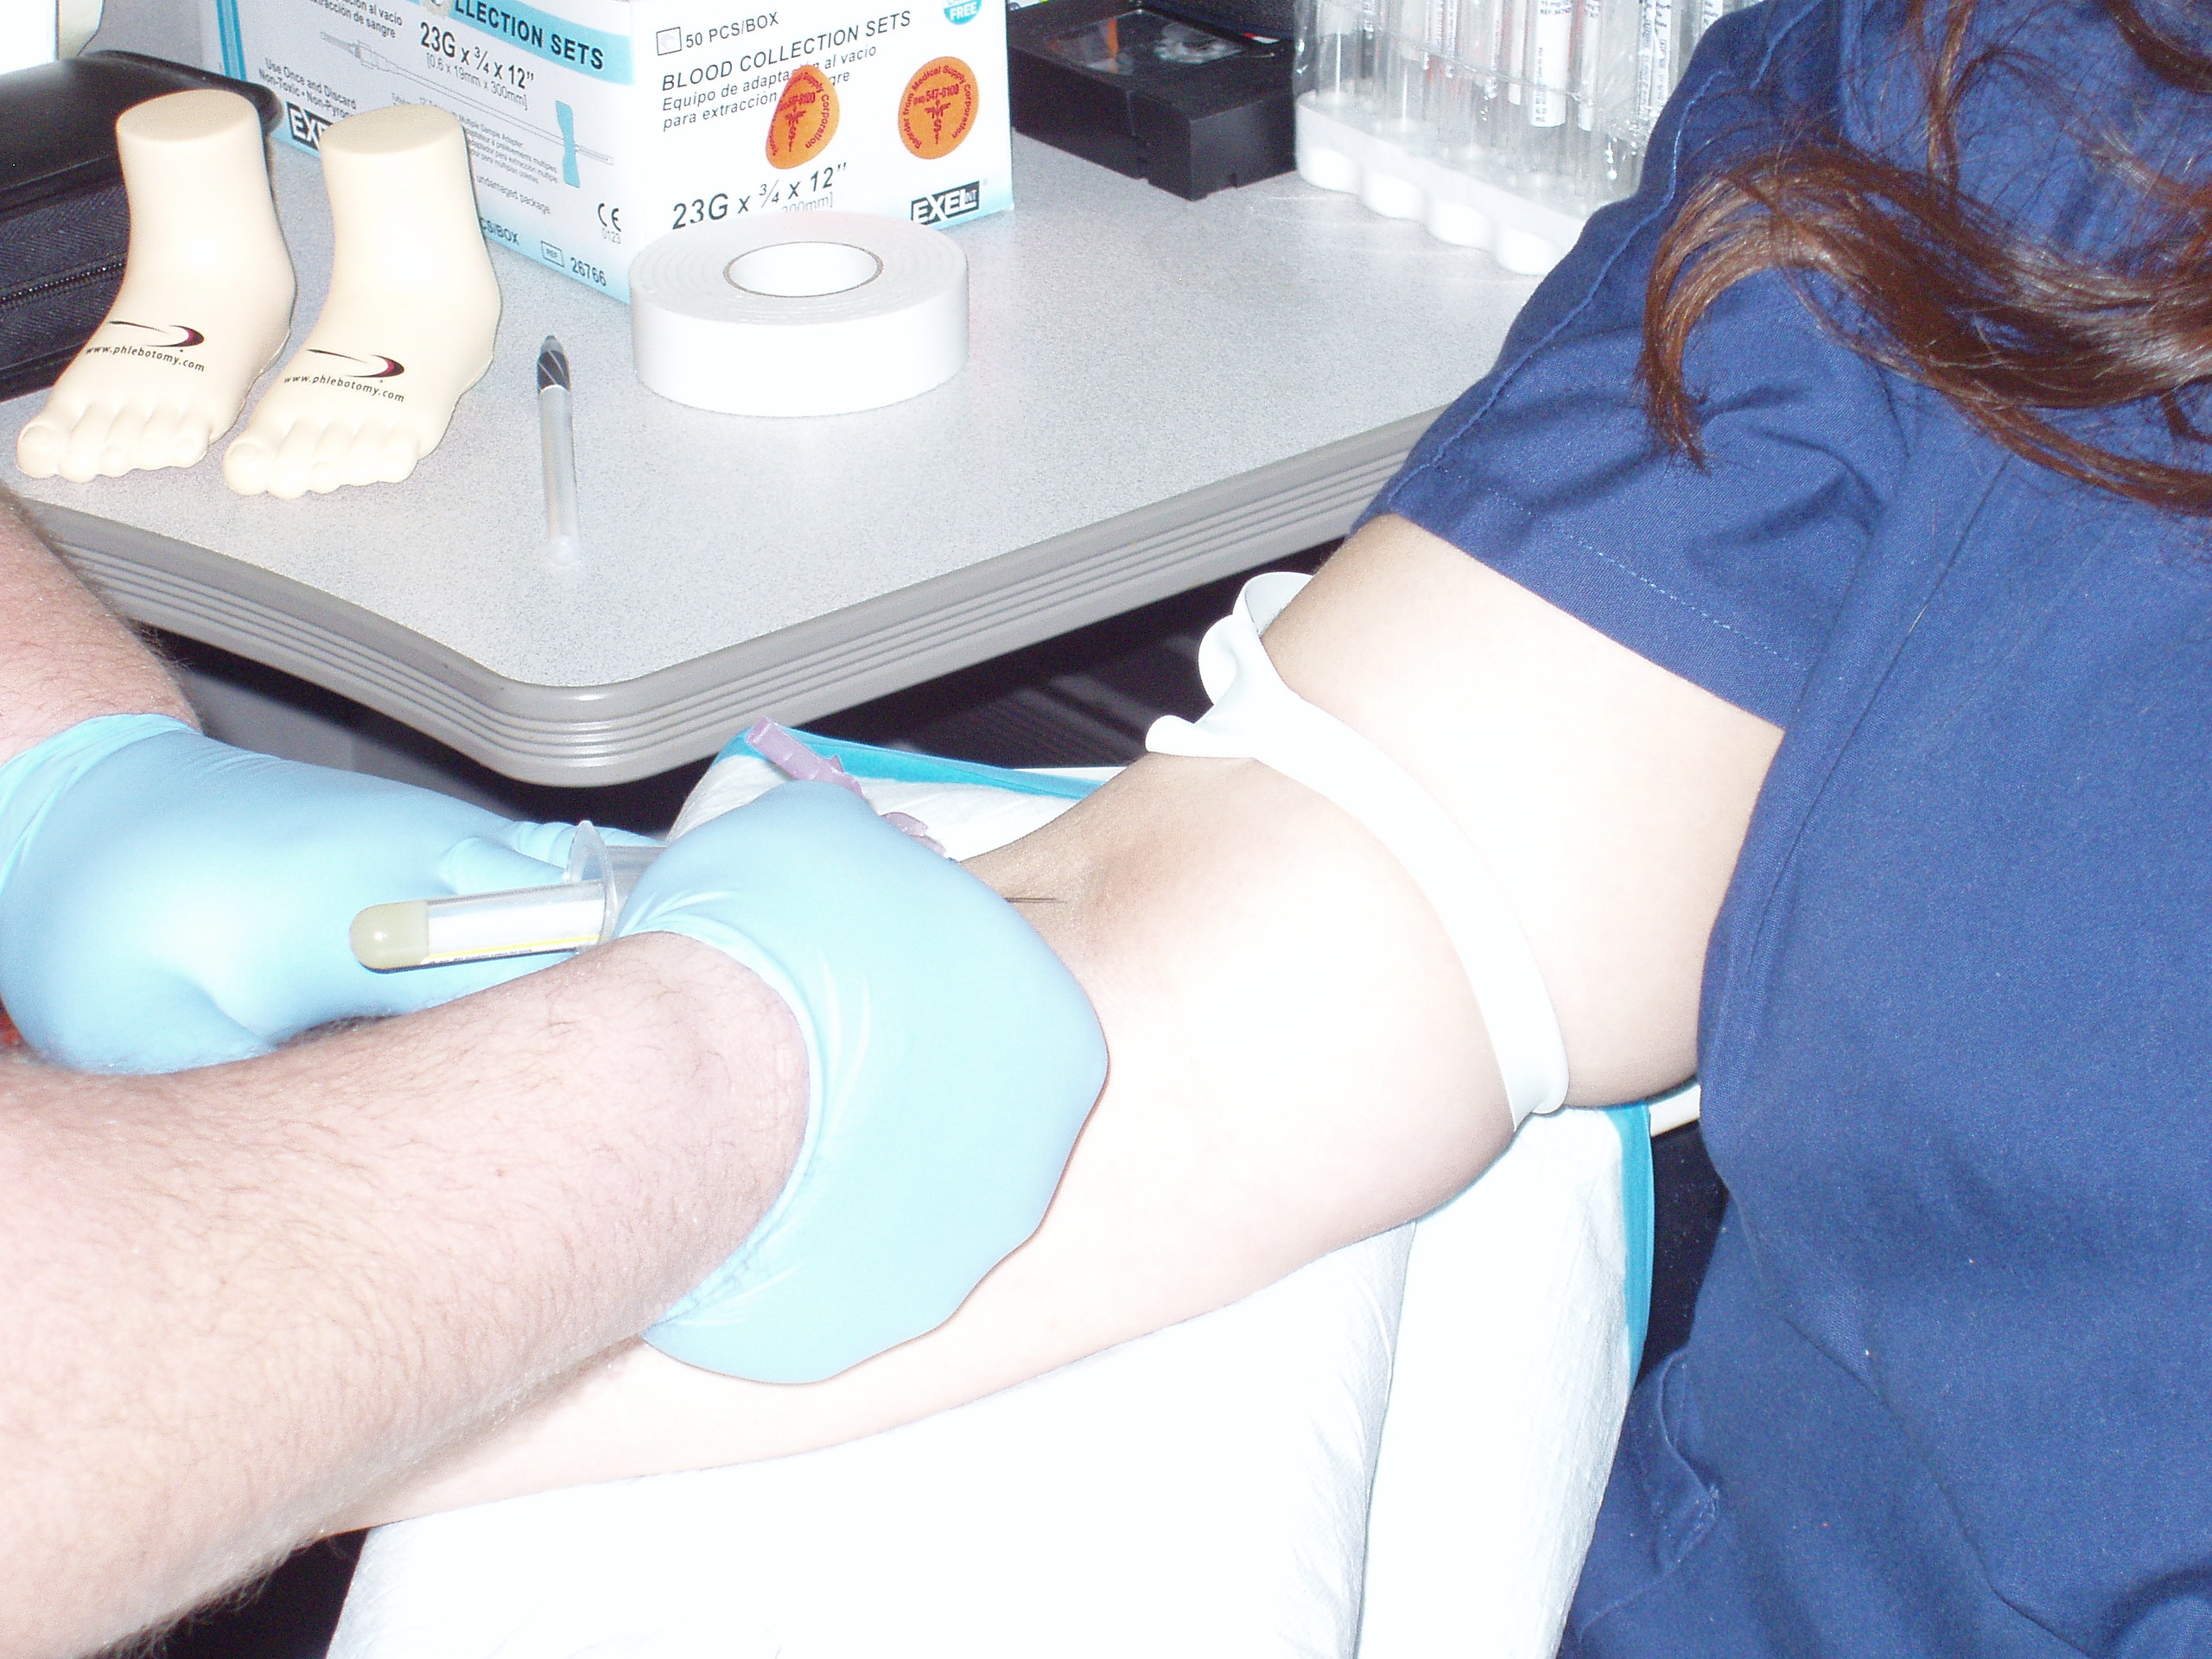 Phlebotomy Students are able to earn 25 hours of venipuncture experience.